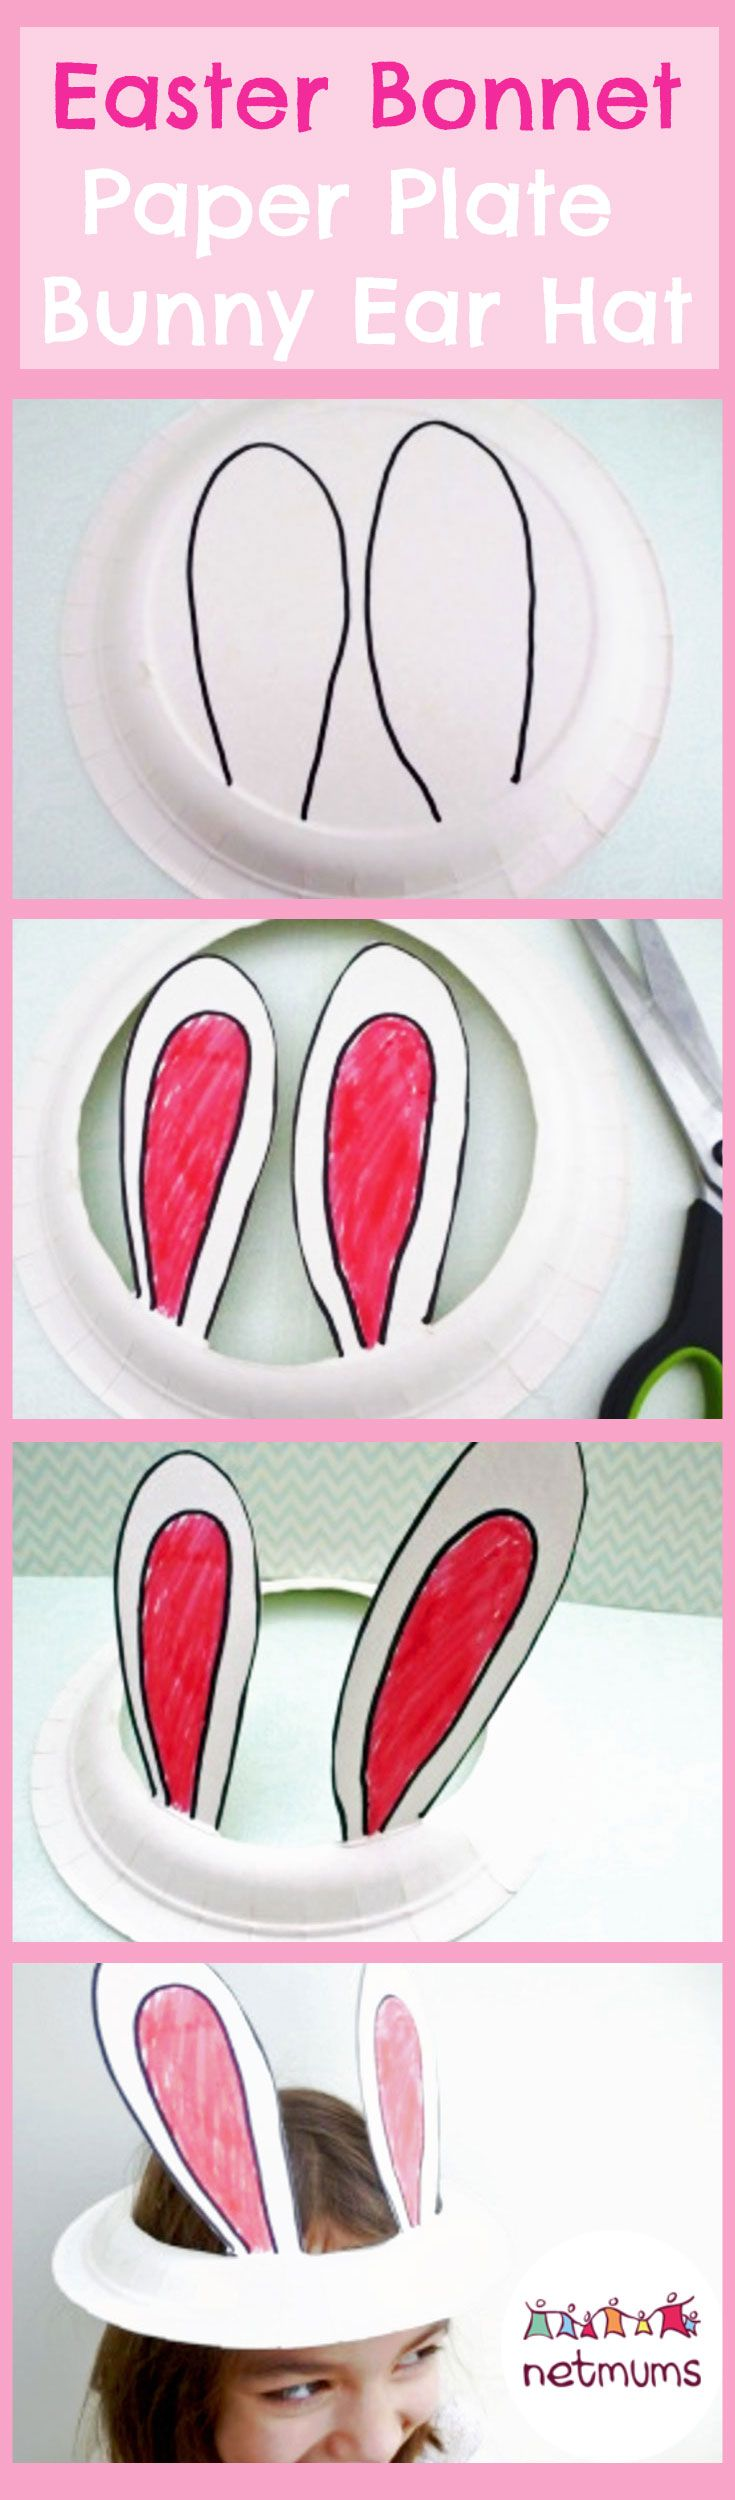 Make this super cute bunny ears Easter bonnet in minutes. A cute and easy Easter craft for kids.